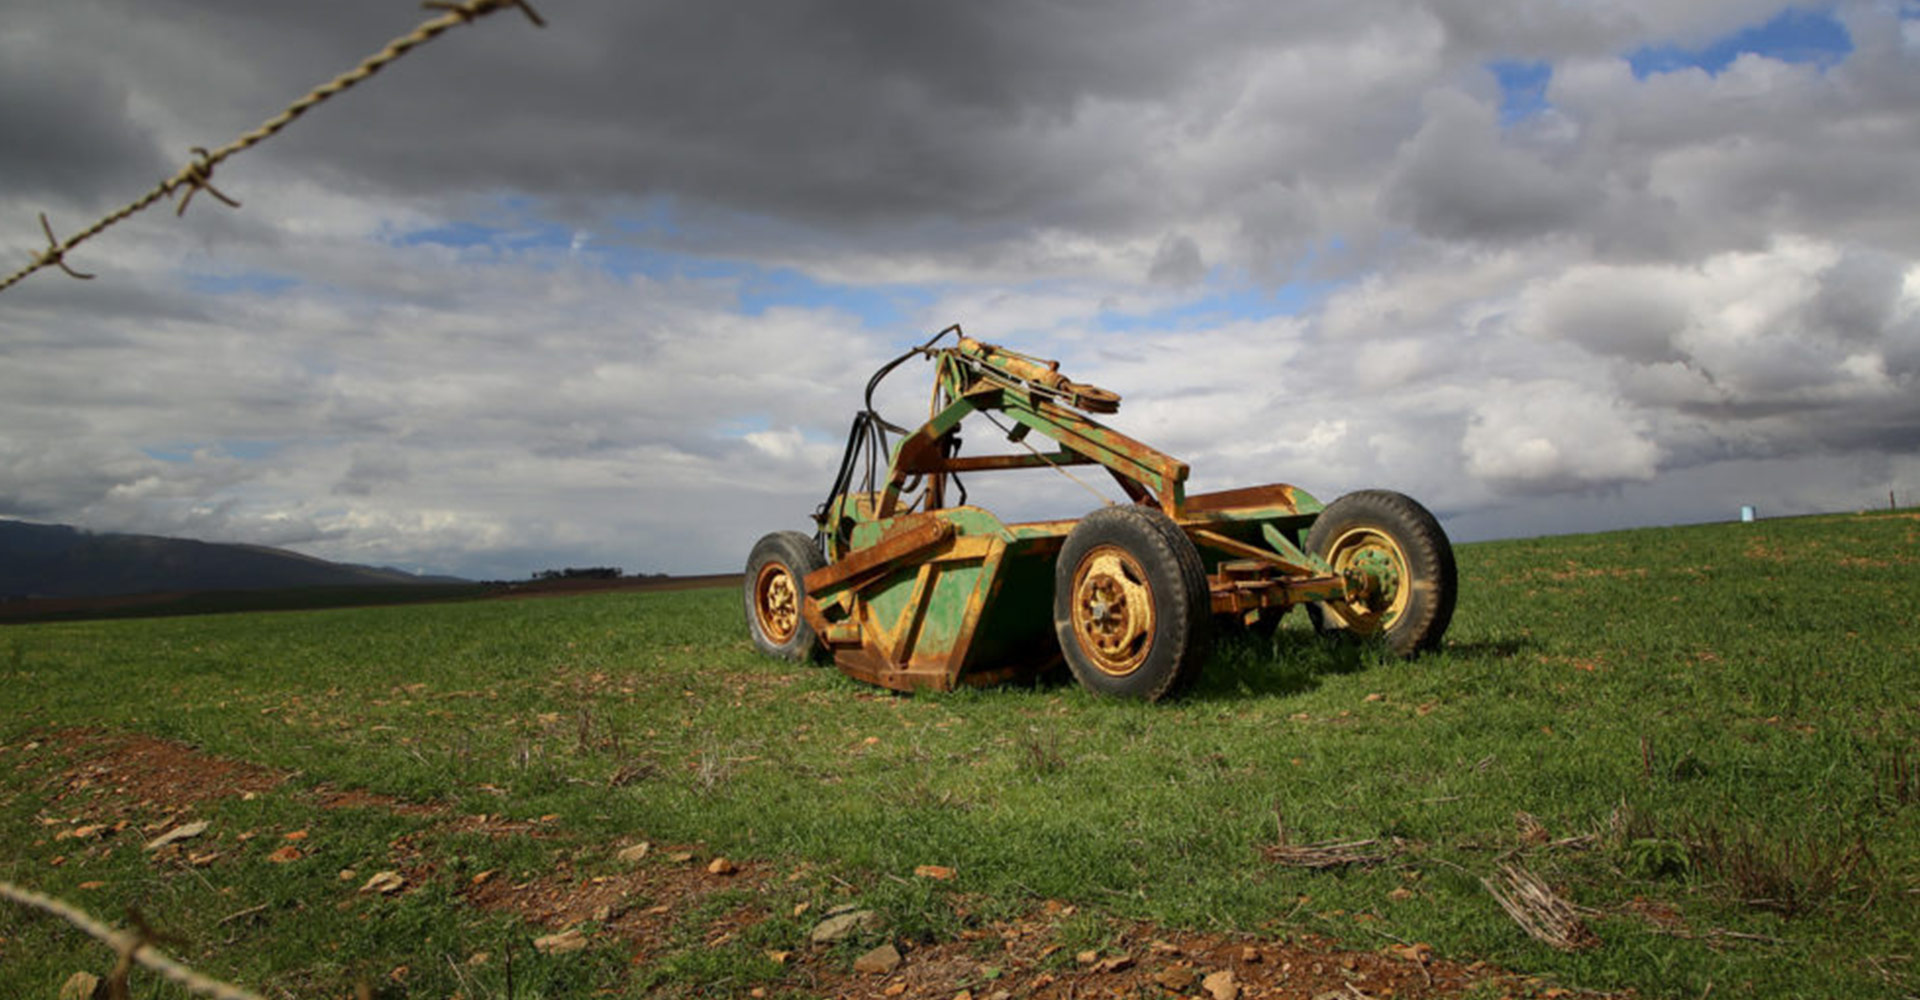 Stephen Greenberg: Neoliberals capture South African smallholder farmer support policy